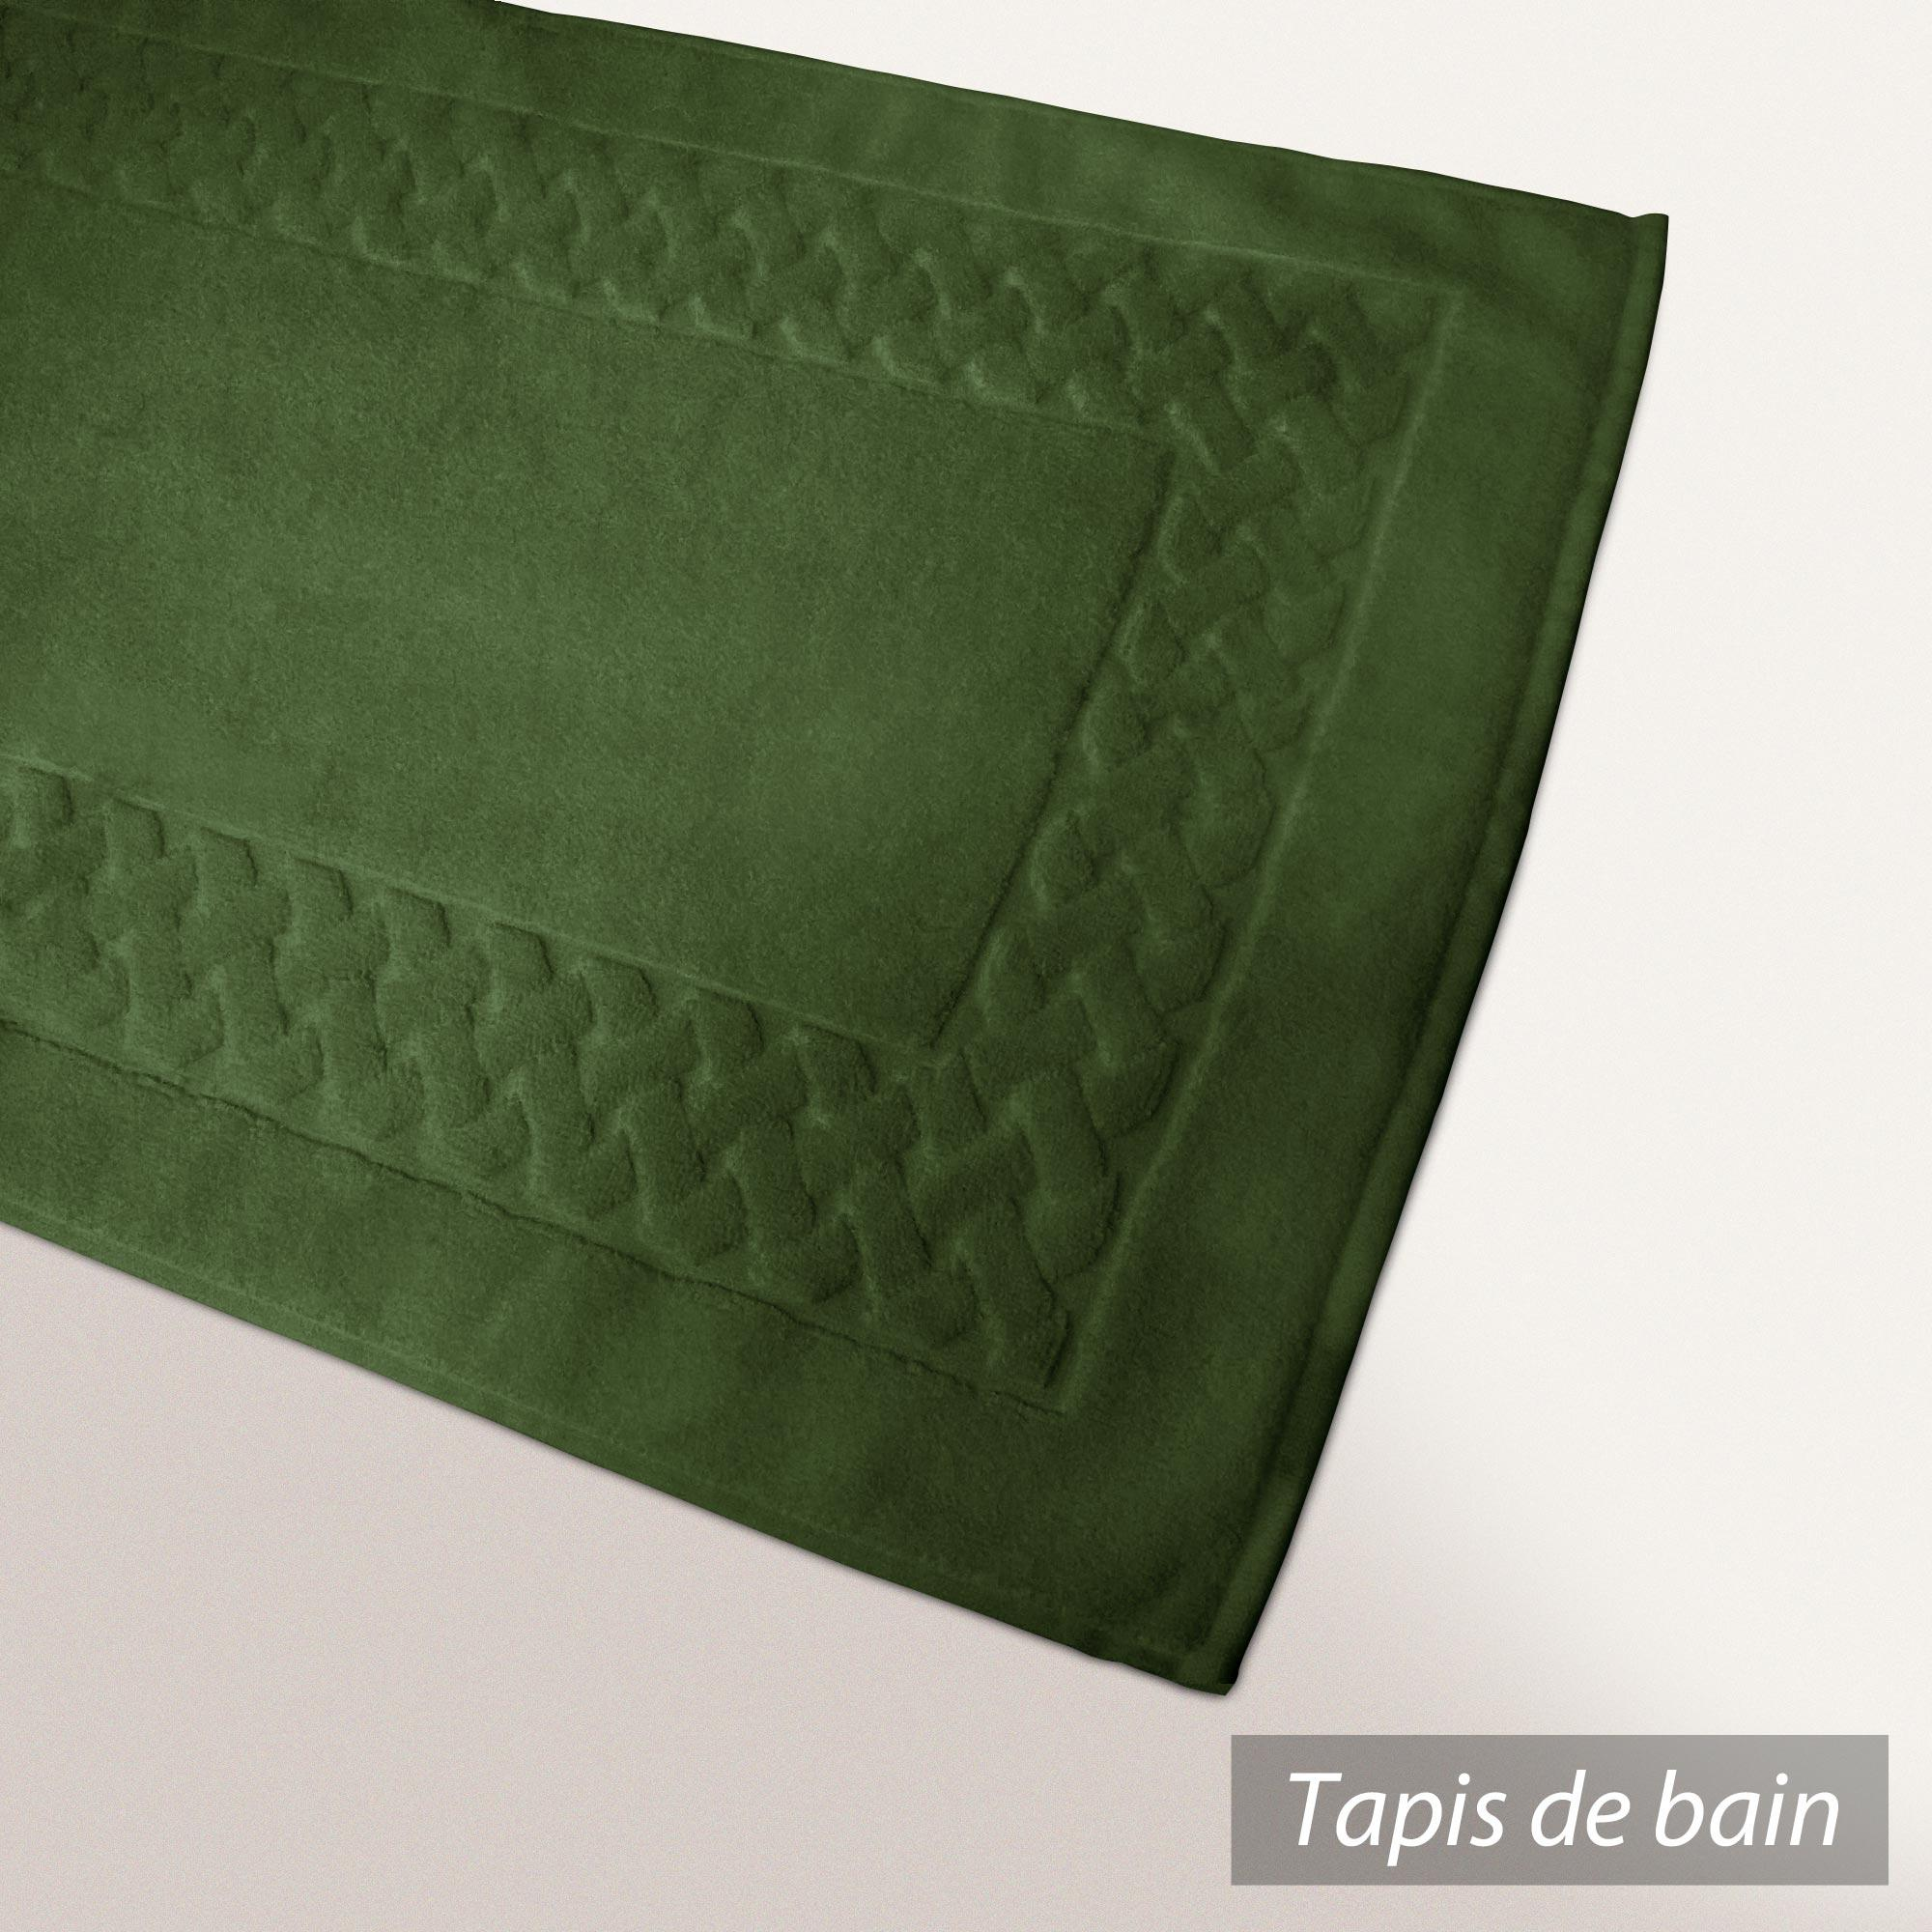 tapis de bain 50x80 coton uni royal cresent vert bouteille. Black Bedroom Furniture Sets. Home Design Ideas